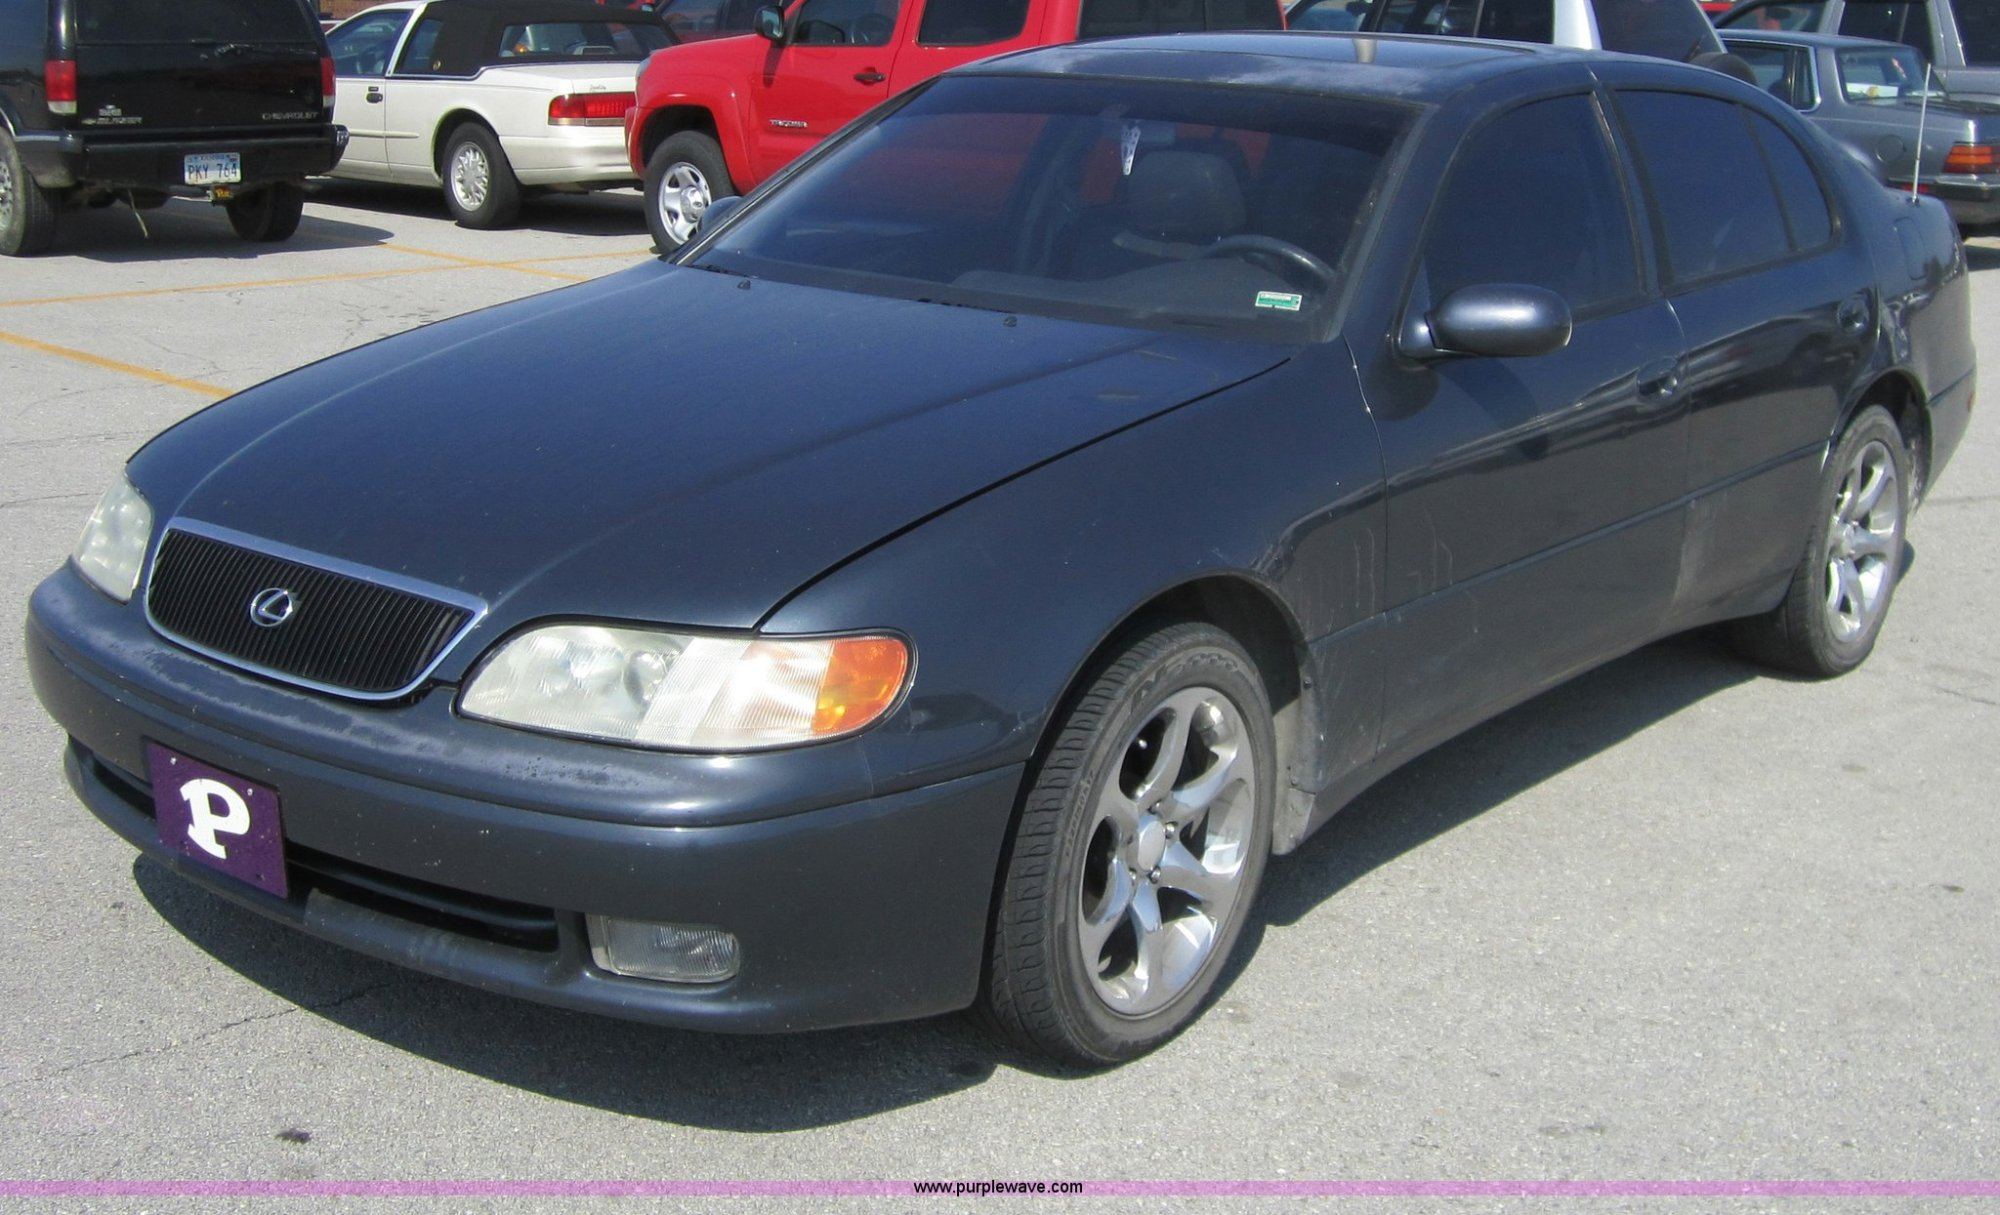 hight resolution of 4385 image for item 4385 1993 lexus gs300